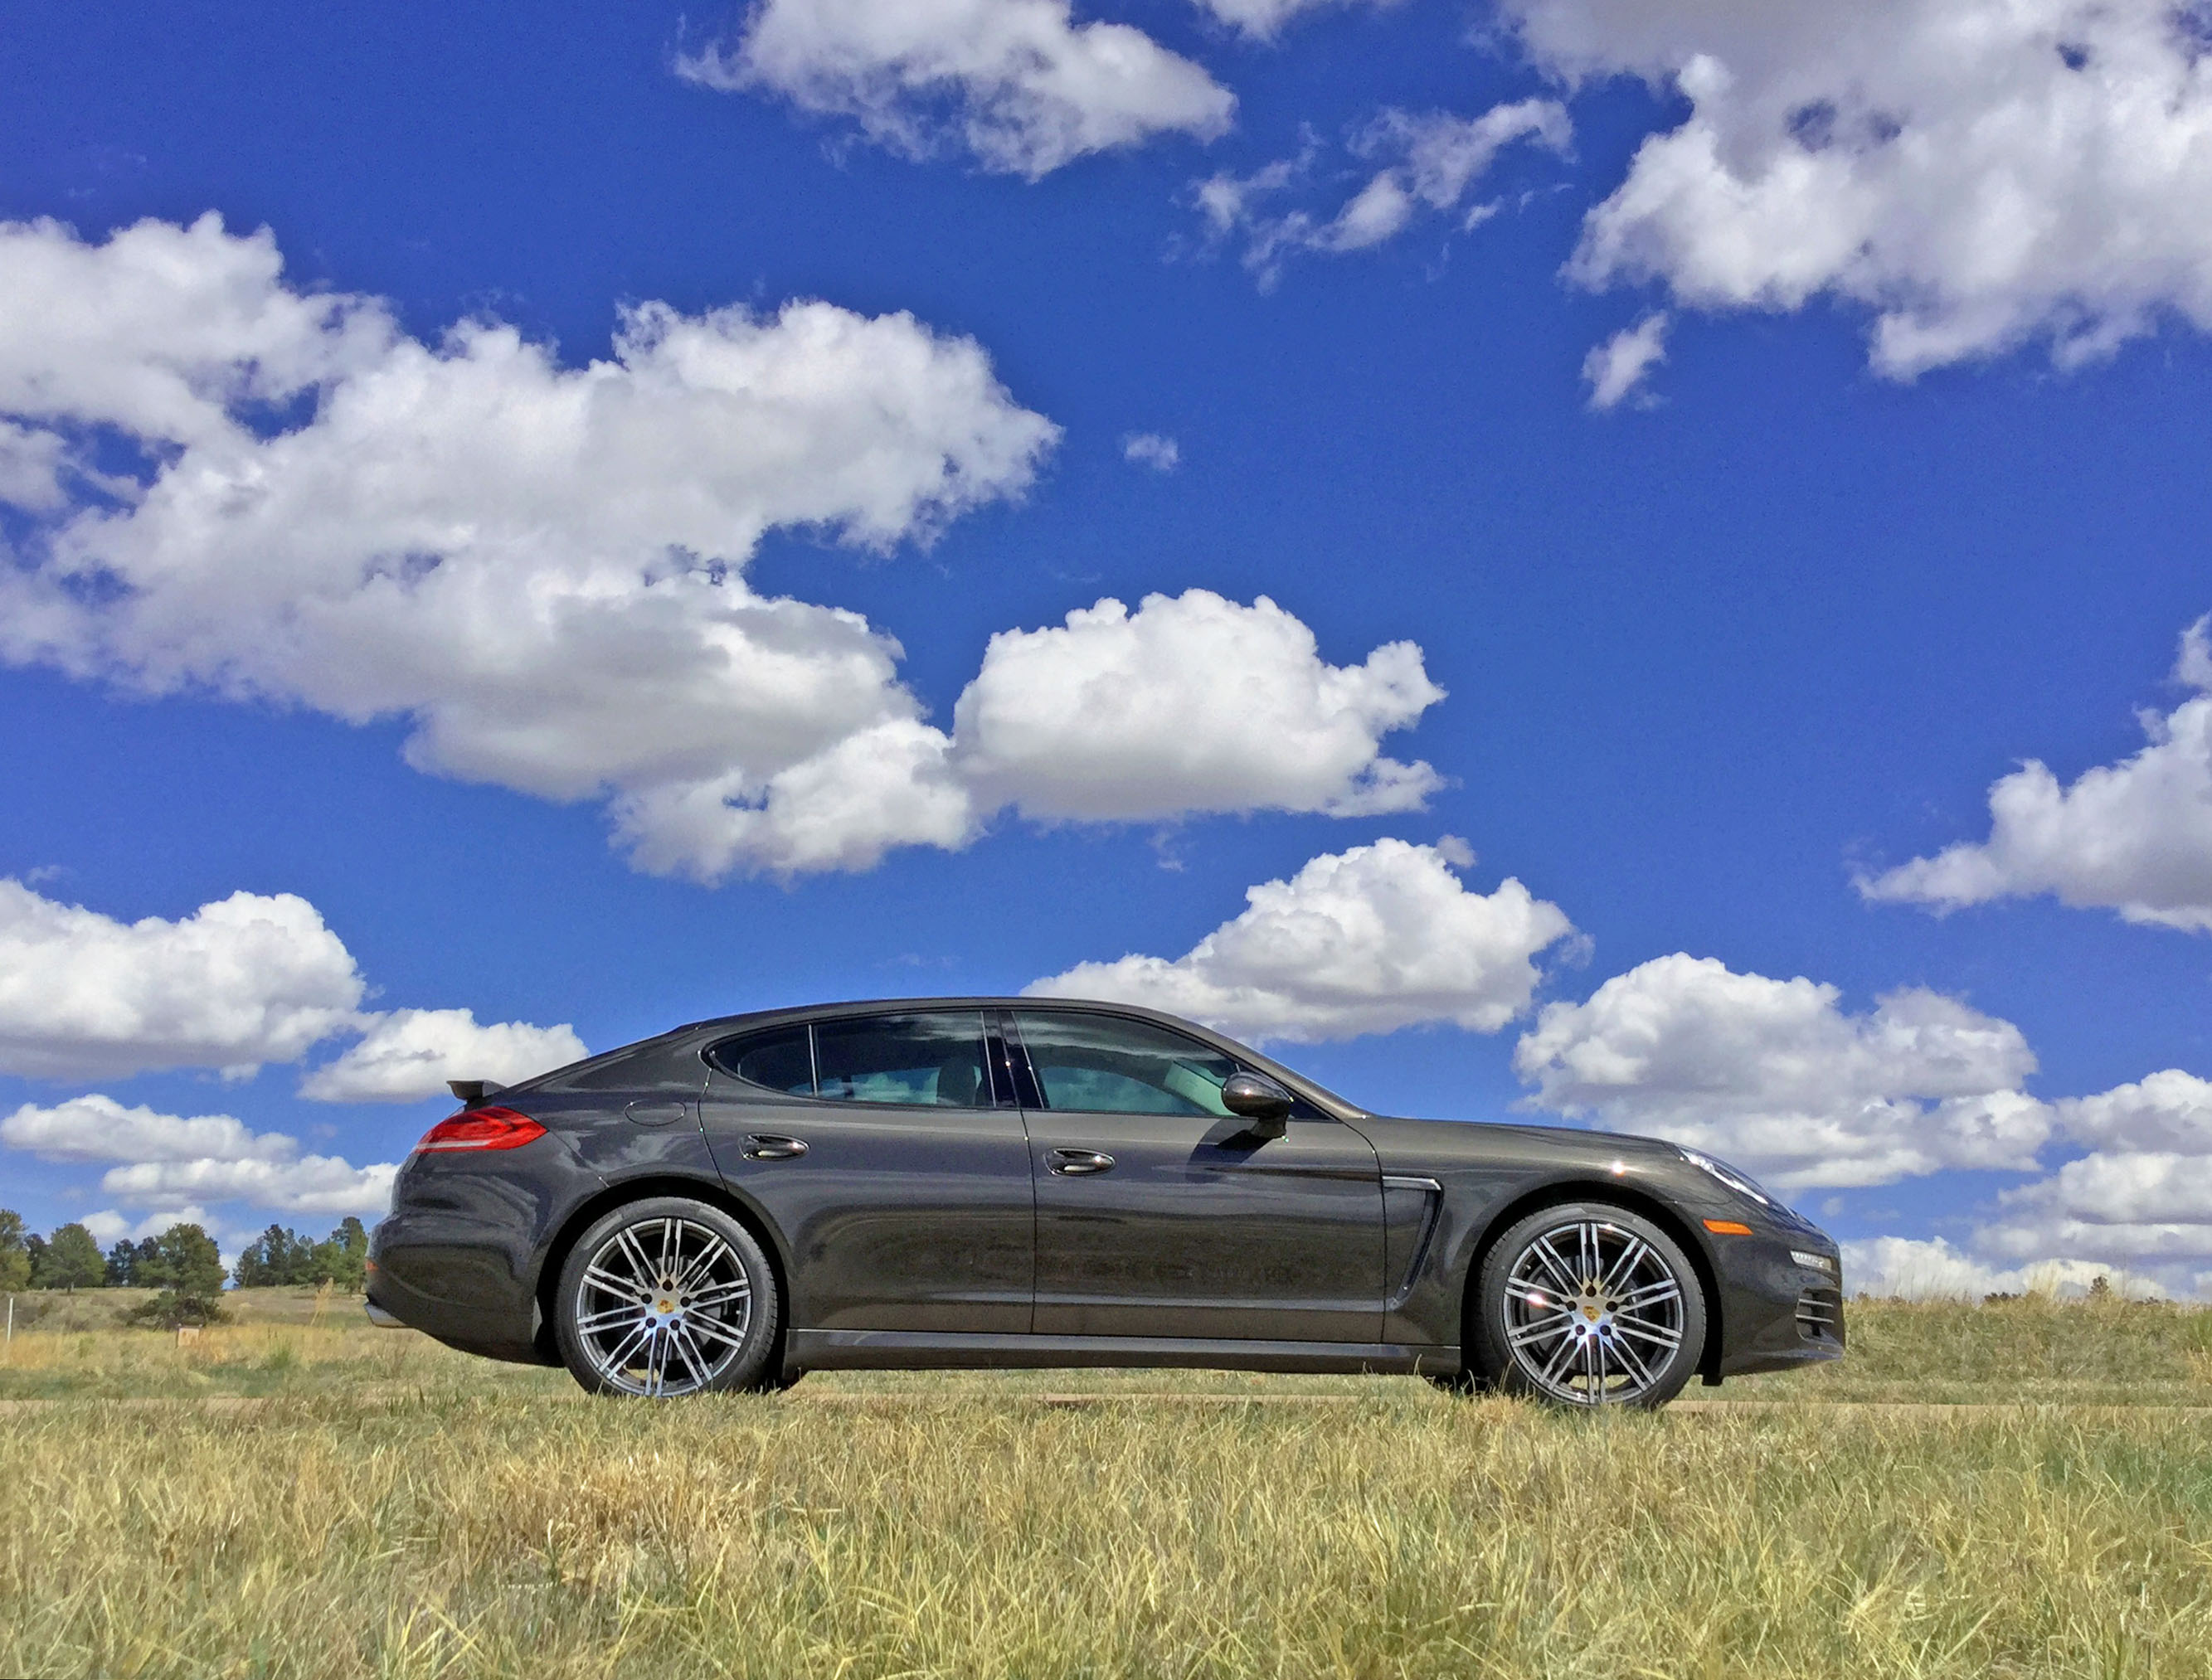 2016 Porsche Panamera 4 and puffy white clouds